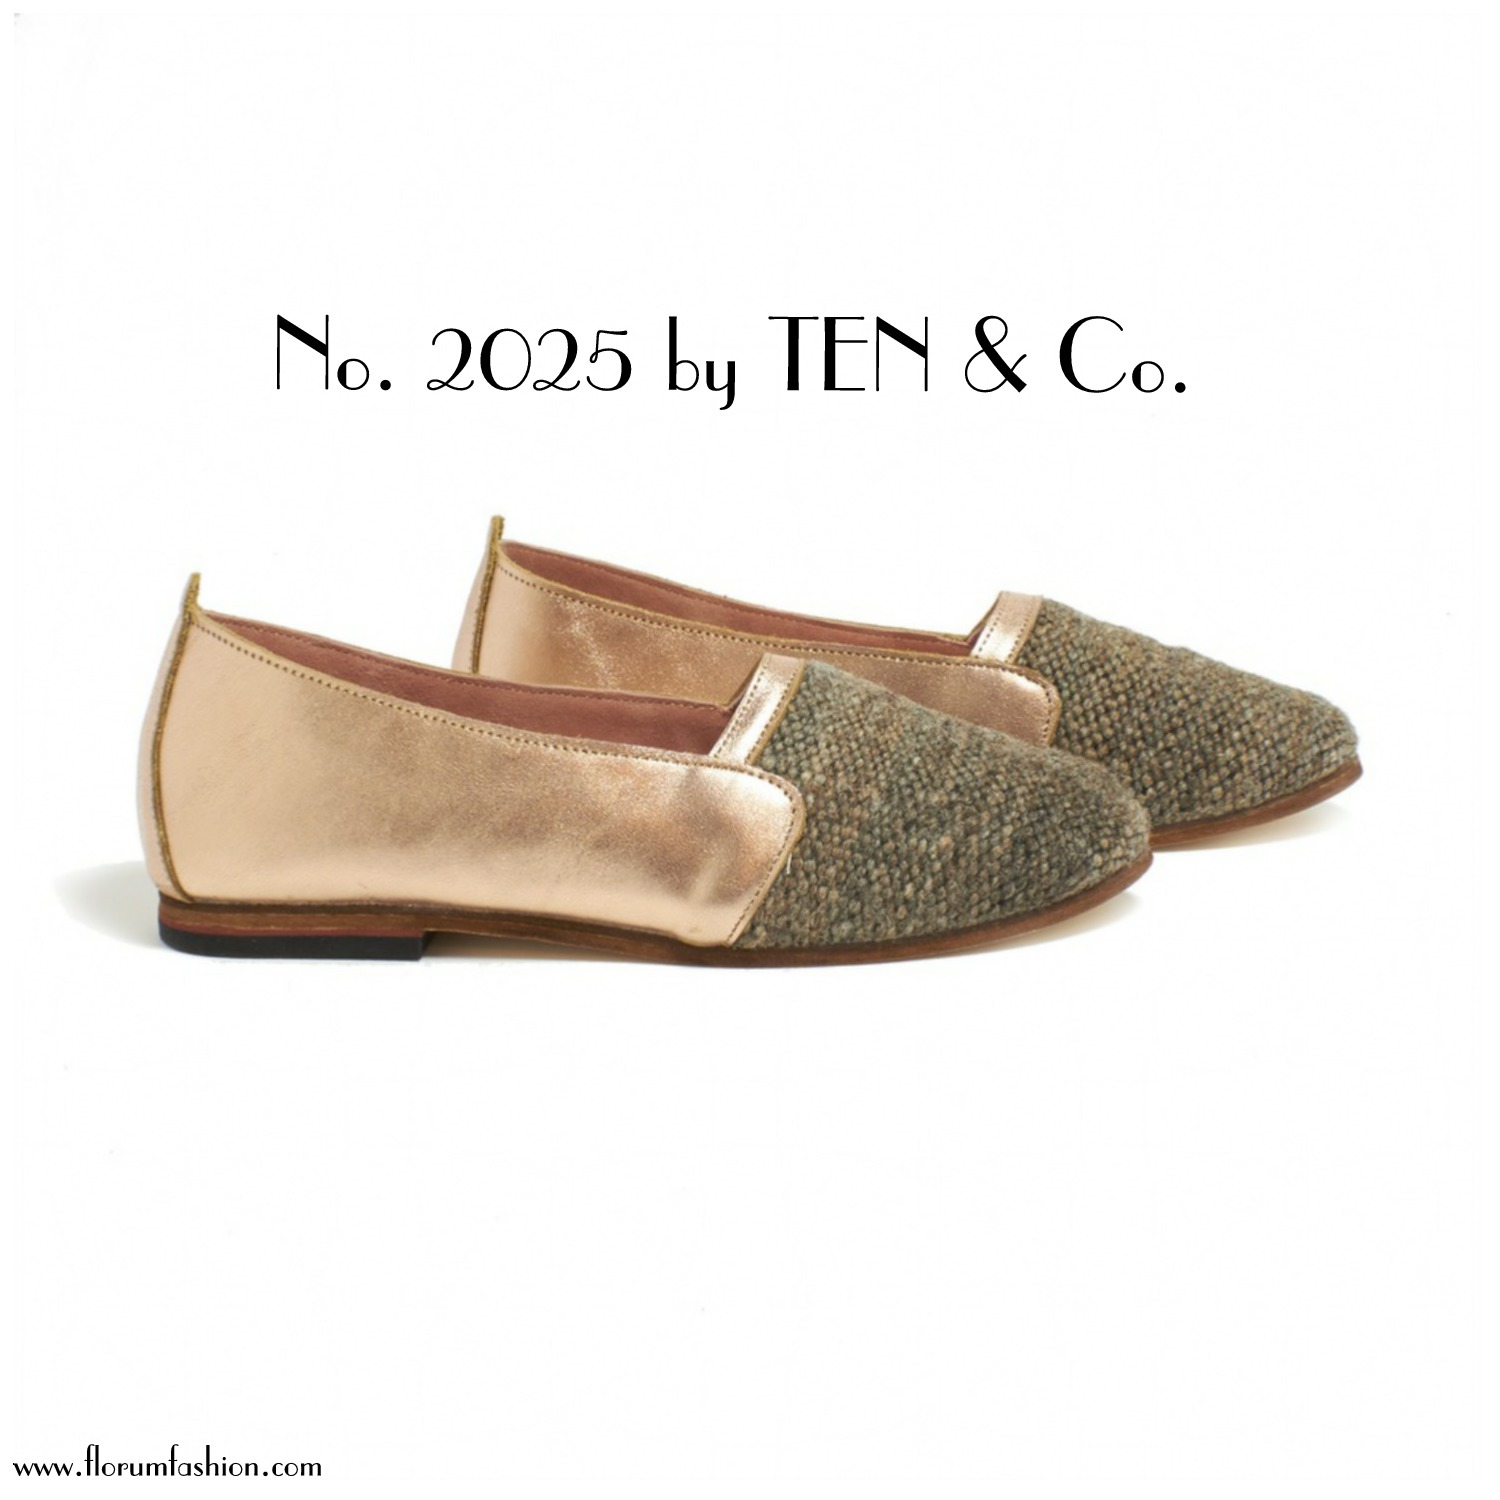 Ethical-Sustainable-Shoes-Florum-Fashion-Ten-and-Co-page-0 (1).jpg